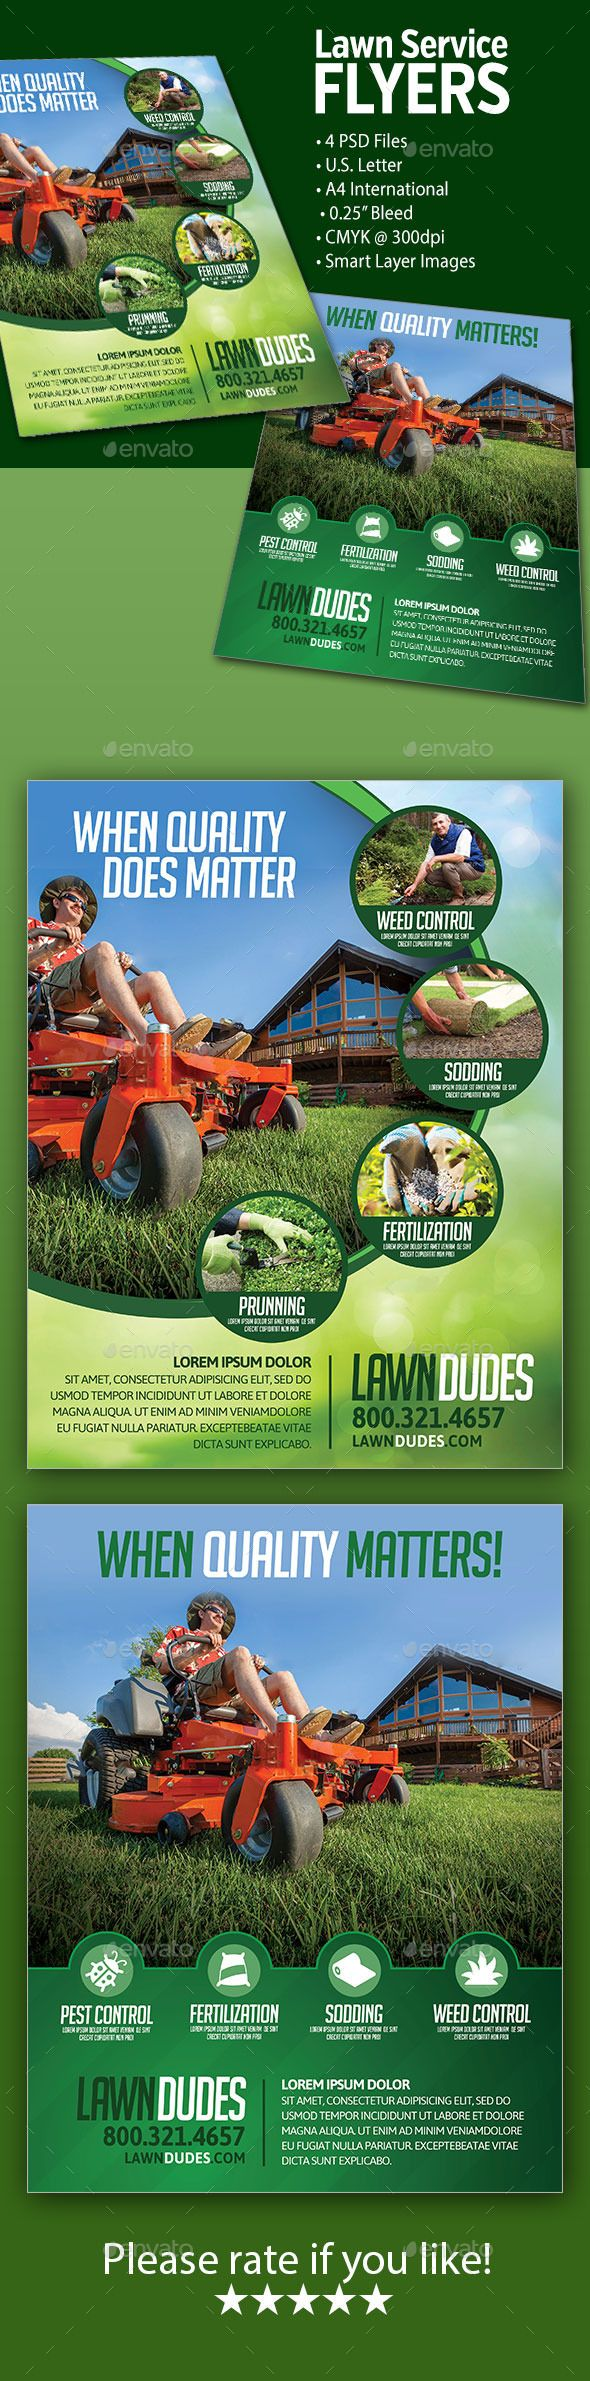 best ideas about lawn service lawn care business lawn service flyers